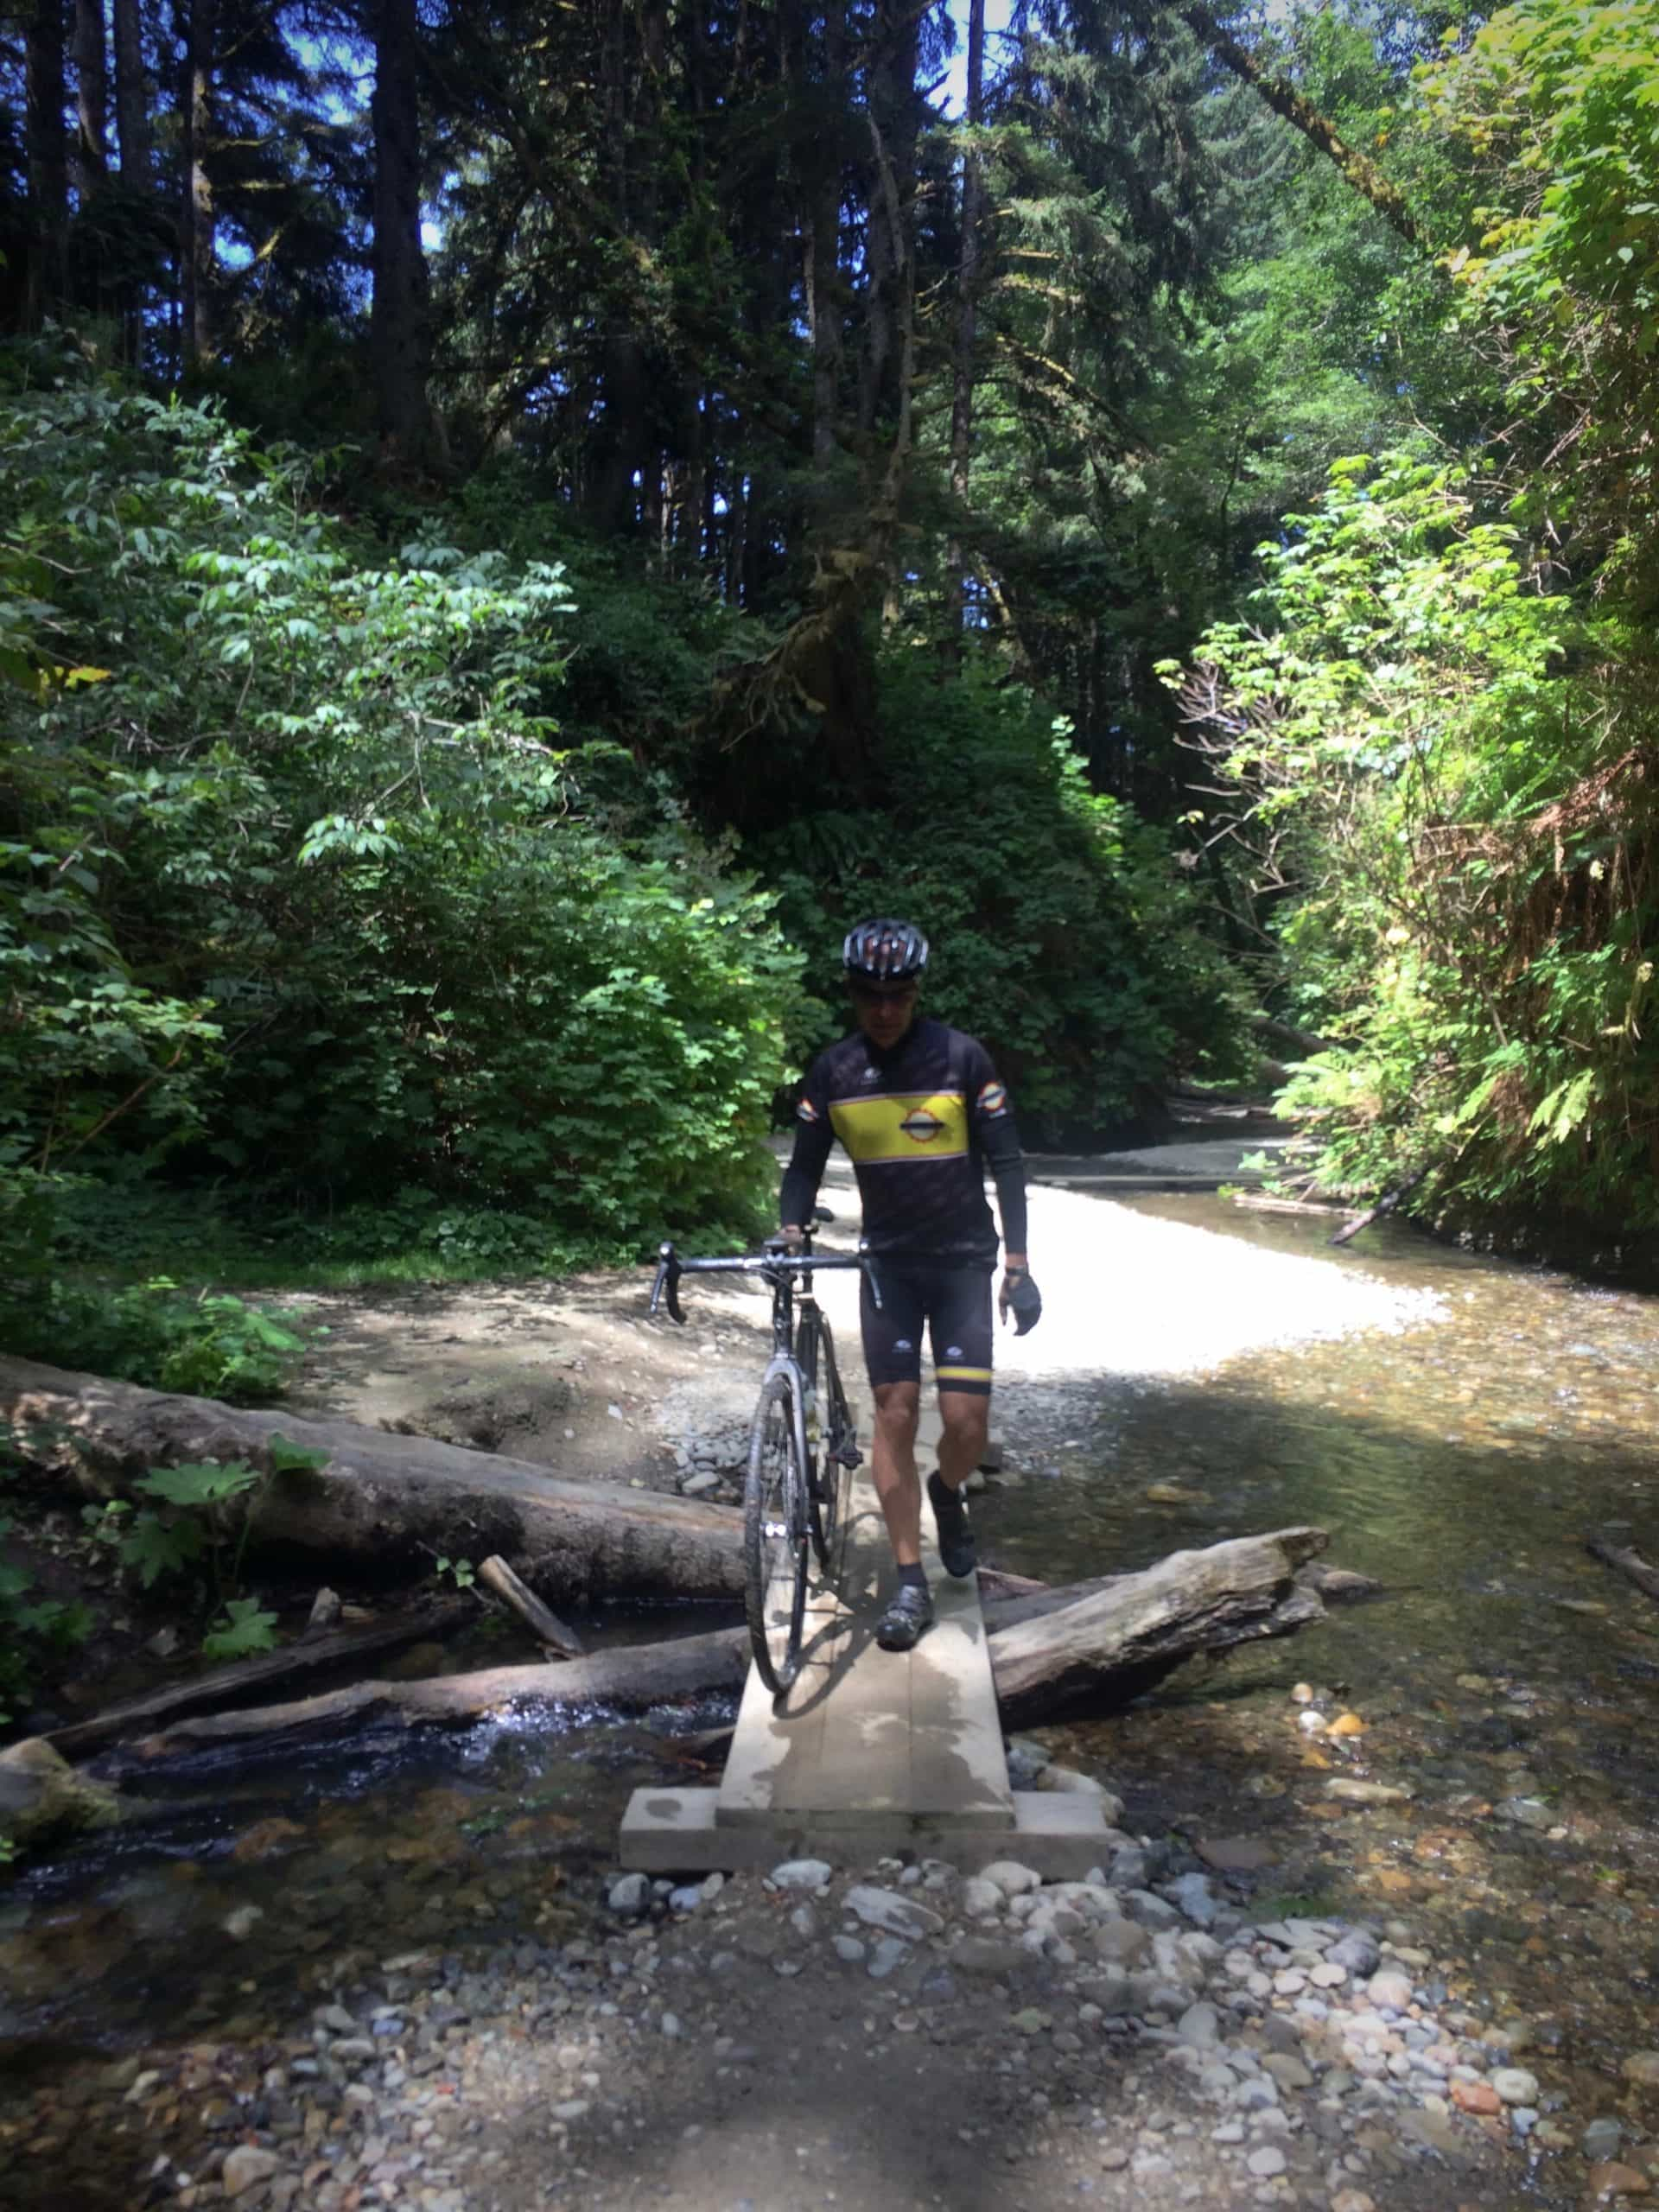 Gravel cyclist walking bike in Fern Canyon in Redwoods State Park near Crescent City, CA.